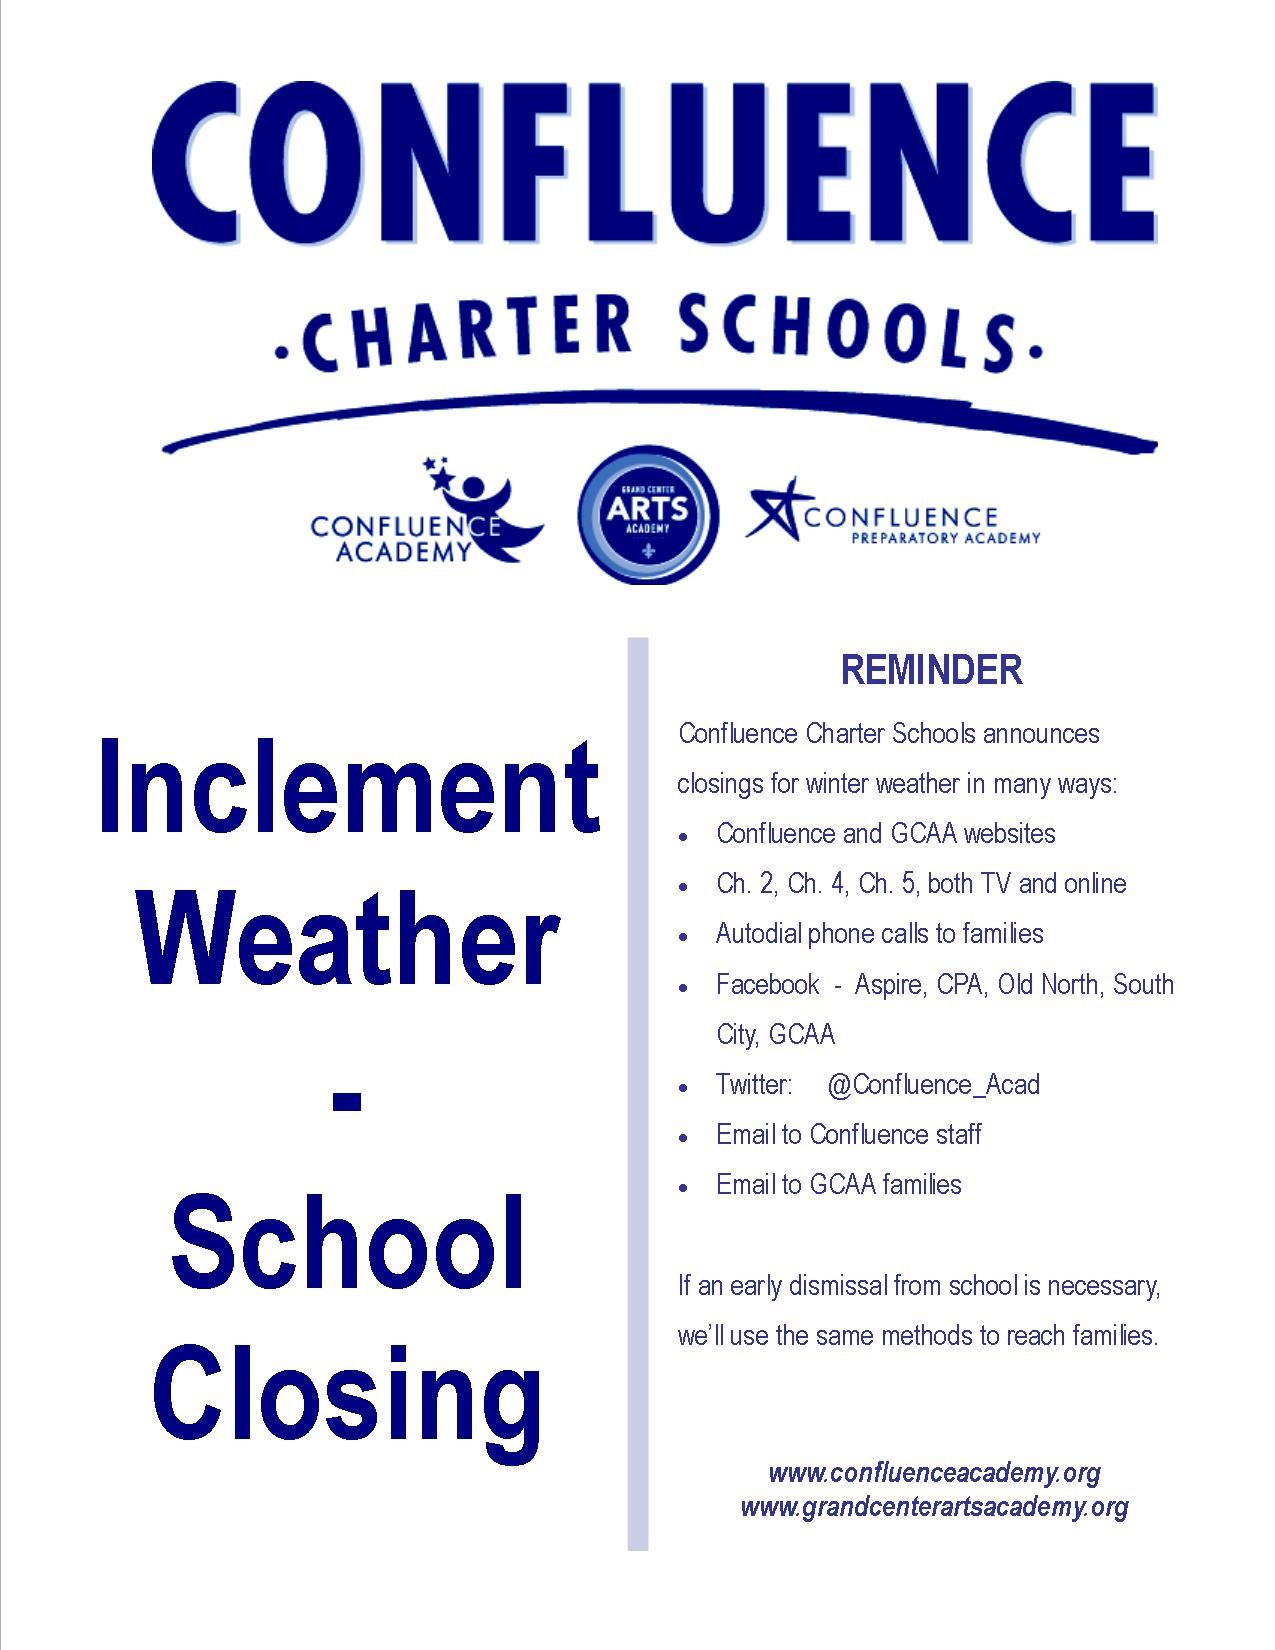 School closing notice flier